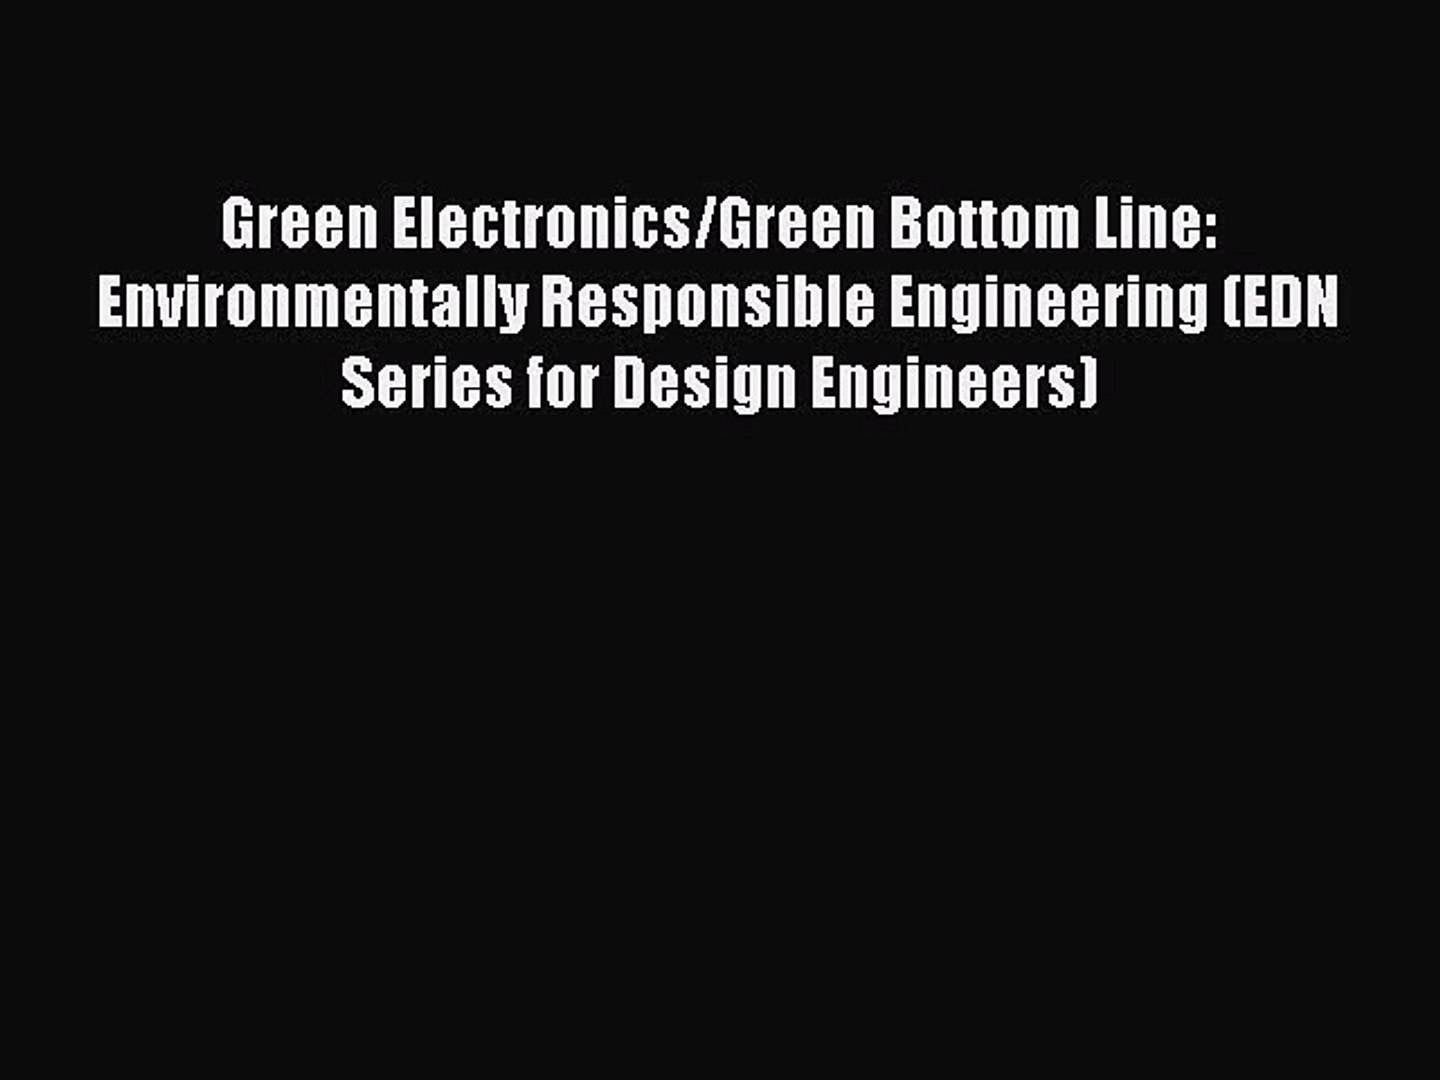 Download Green Electronics/Green Bottom Line: Environmentally Responsible Engineering (EDN